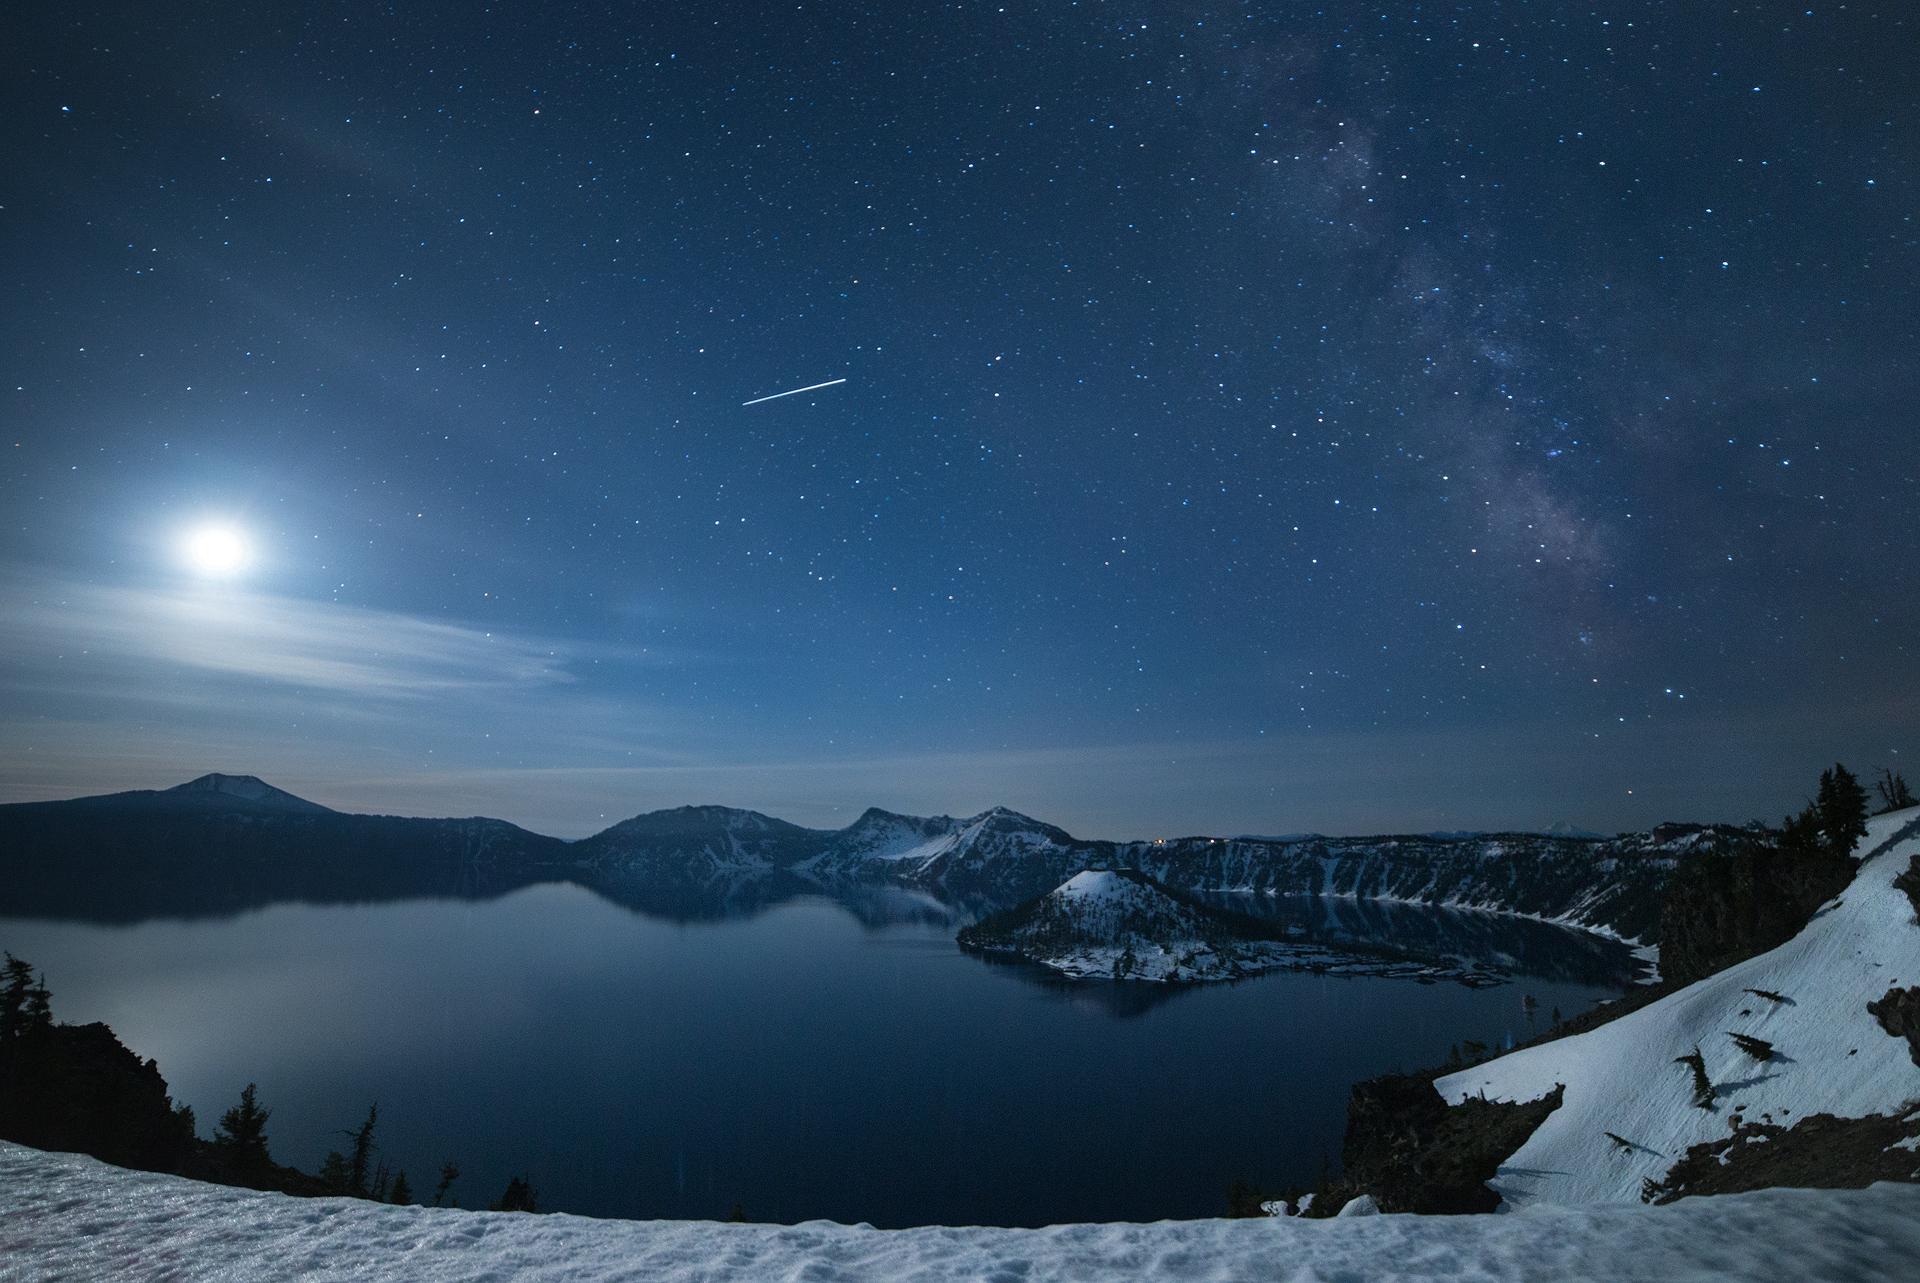 """f/2.8, ISO 1250, 25"""". Crater Lake National Park, 5/29/16, 3:00am."""